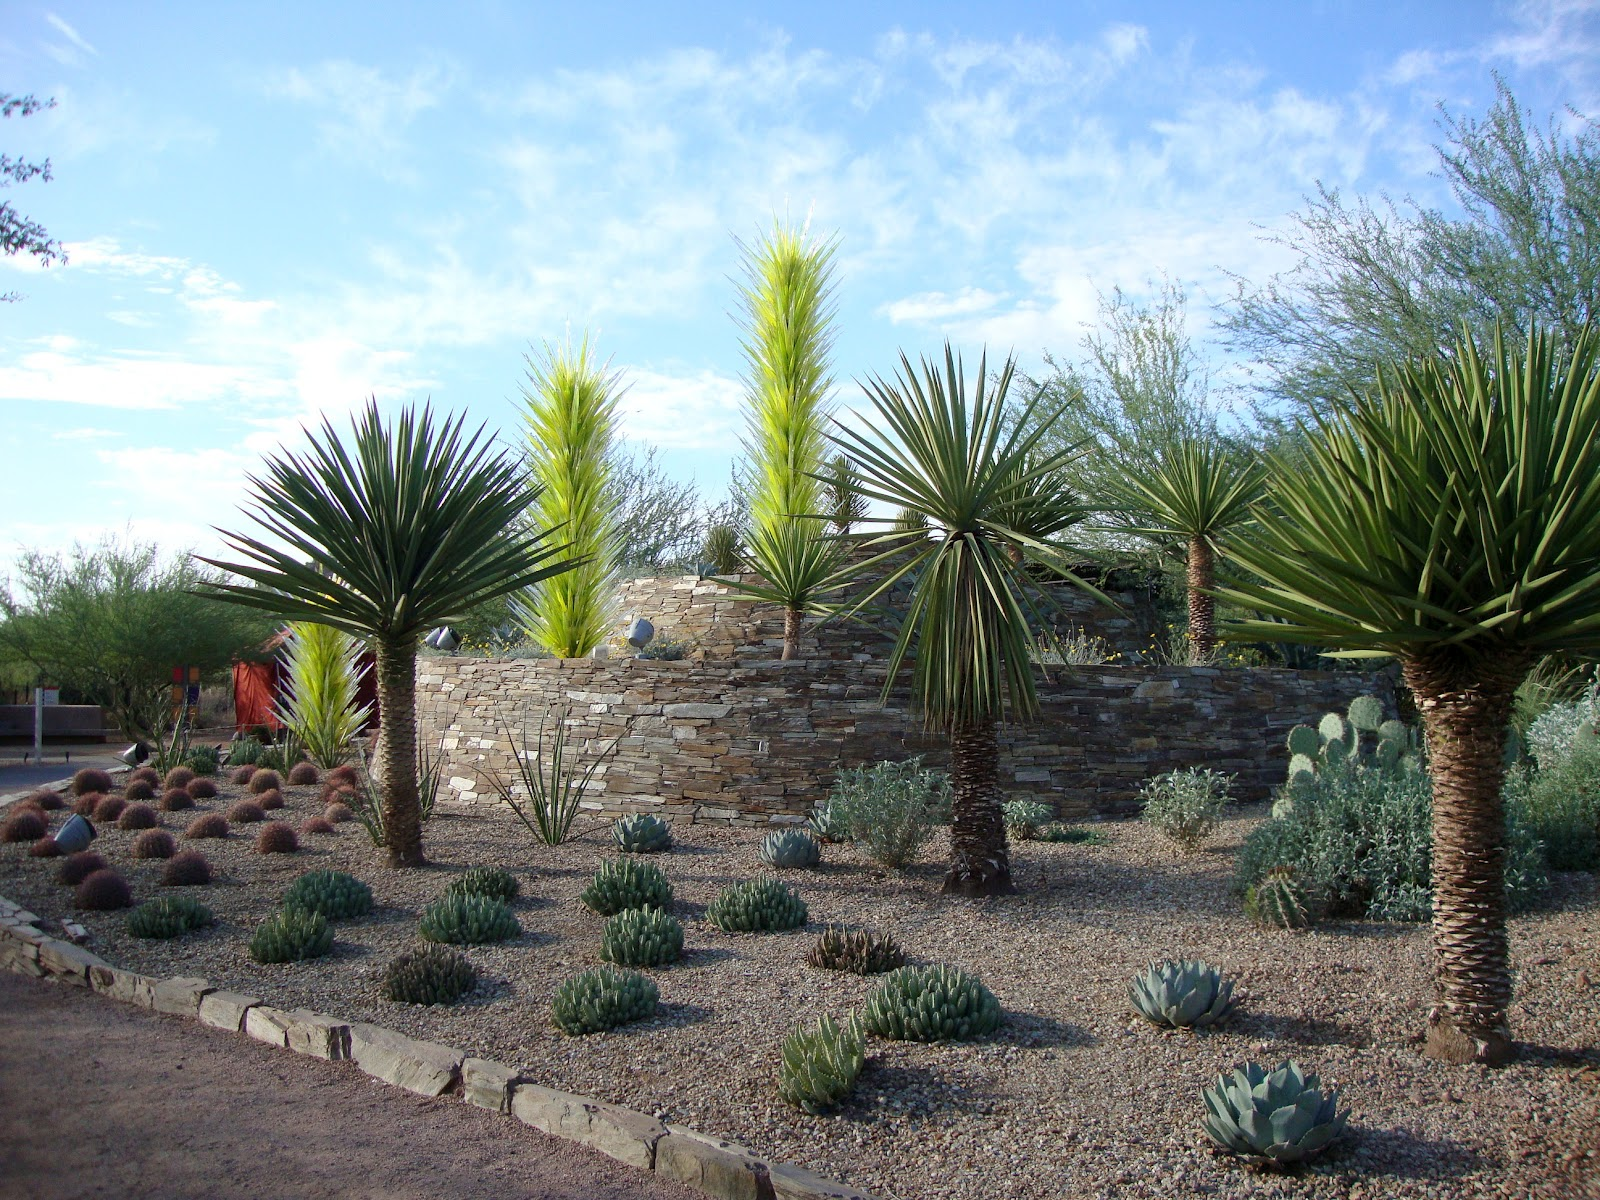 The Desert Botanical Garden, Part One